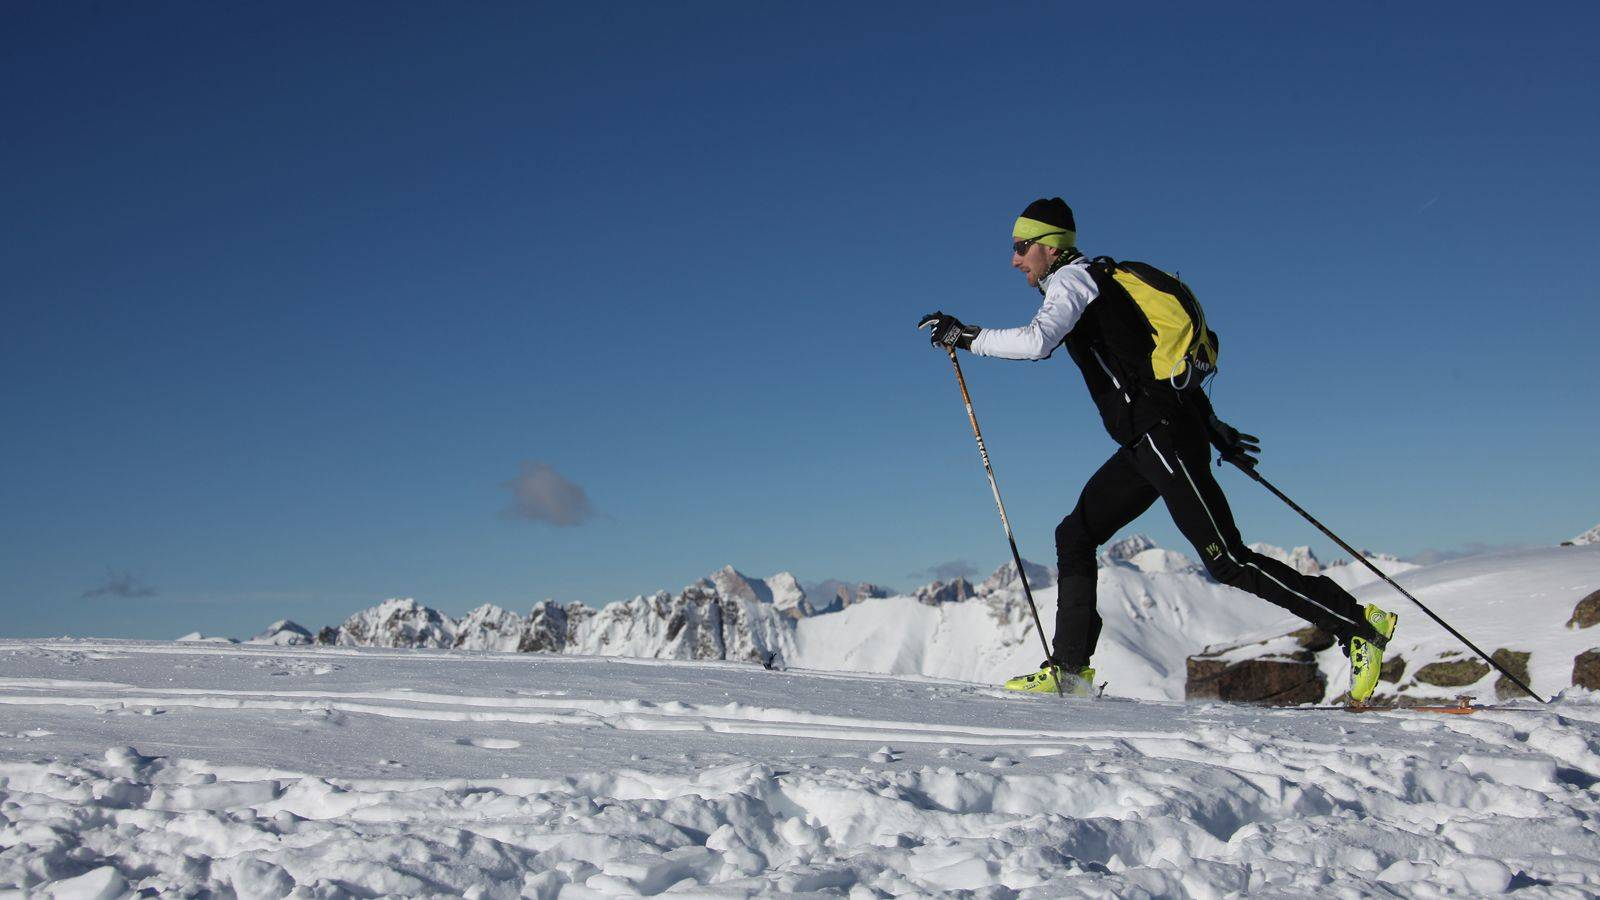 A boy practicing alpine skiing at Passo San Pellegrino